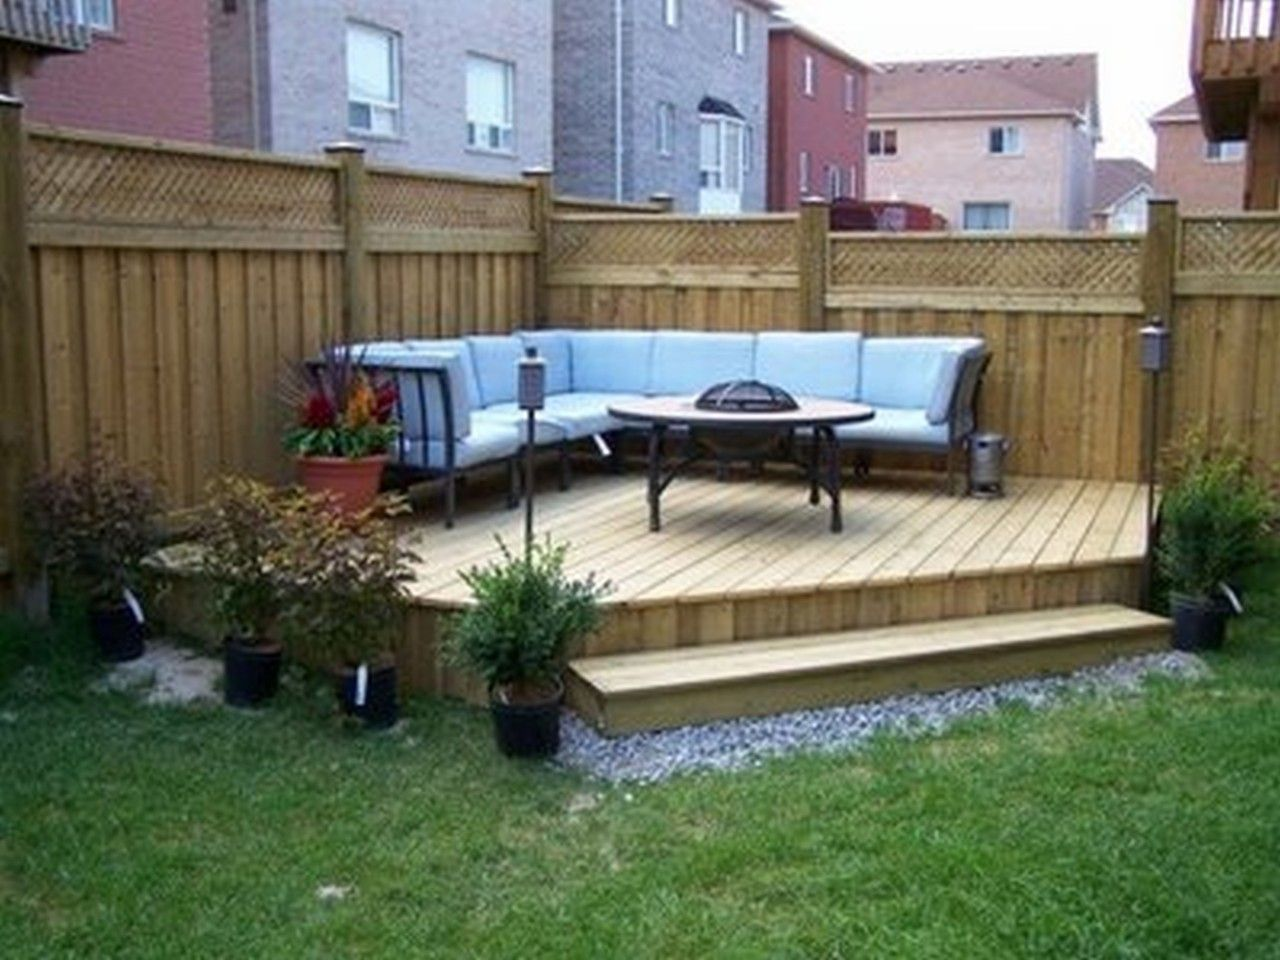 Medium Of Cool Backyard Designs